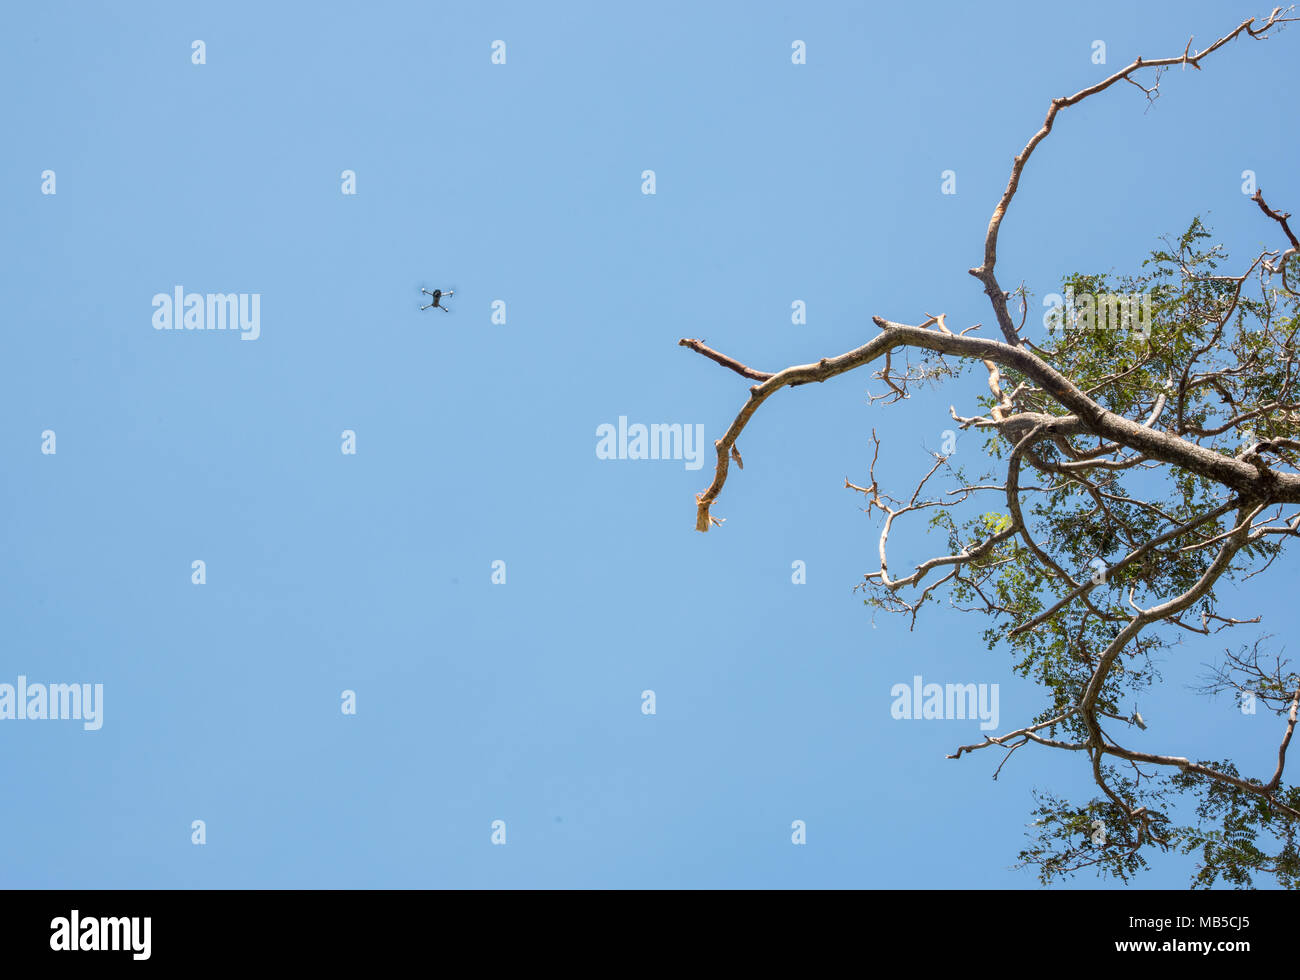 Low angle view of drone in a clear blue sky with branches in Darwin, Australia - Stock Image